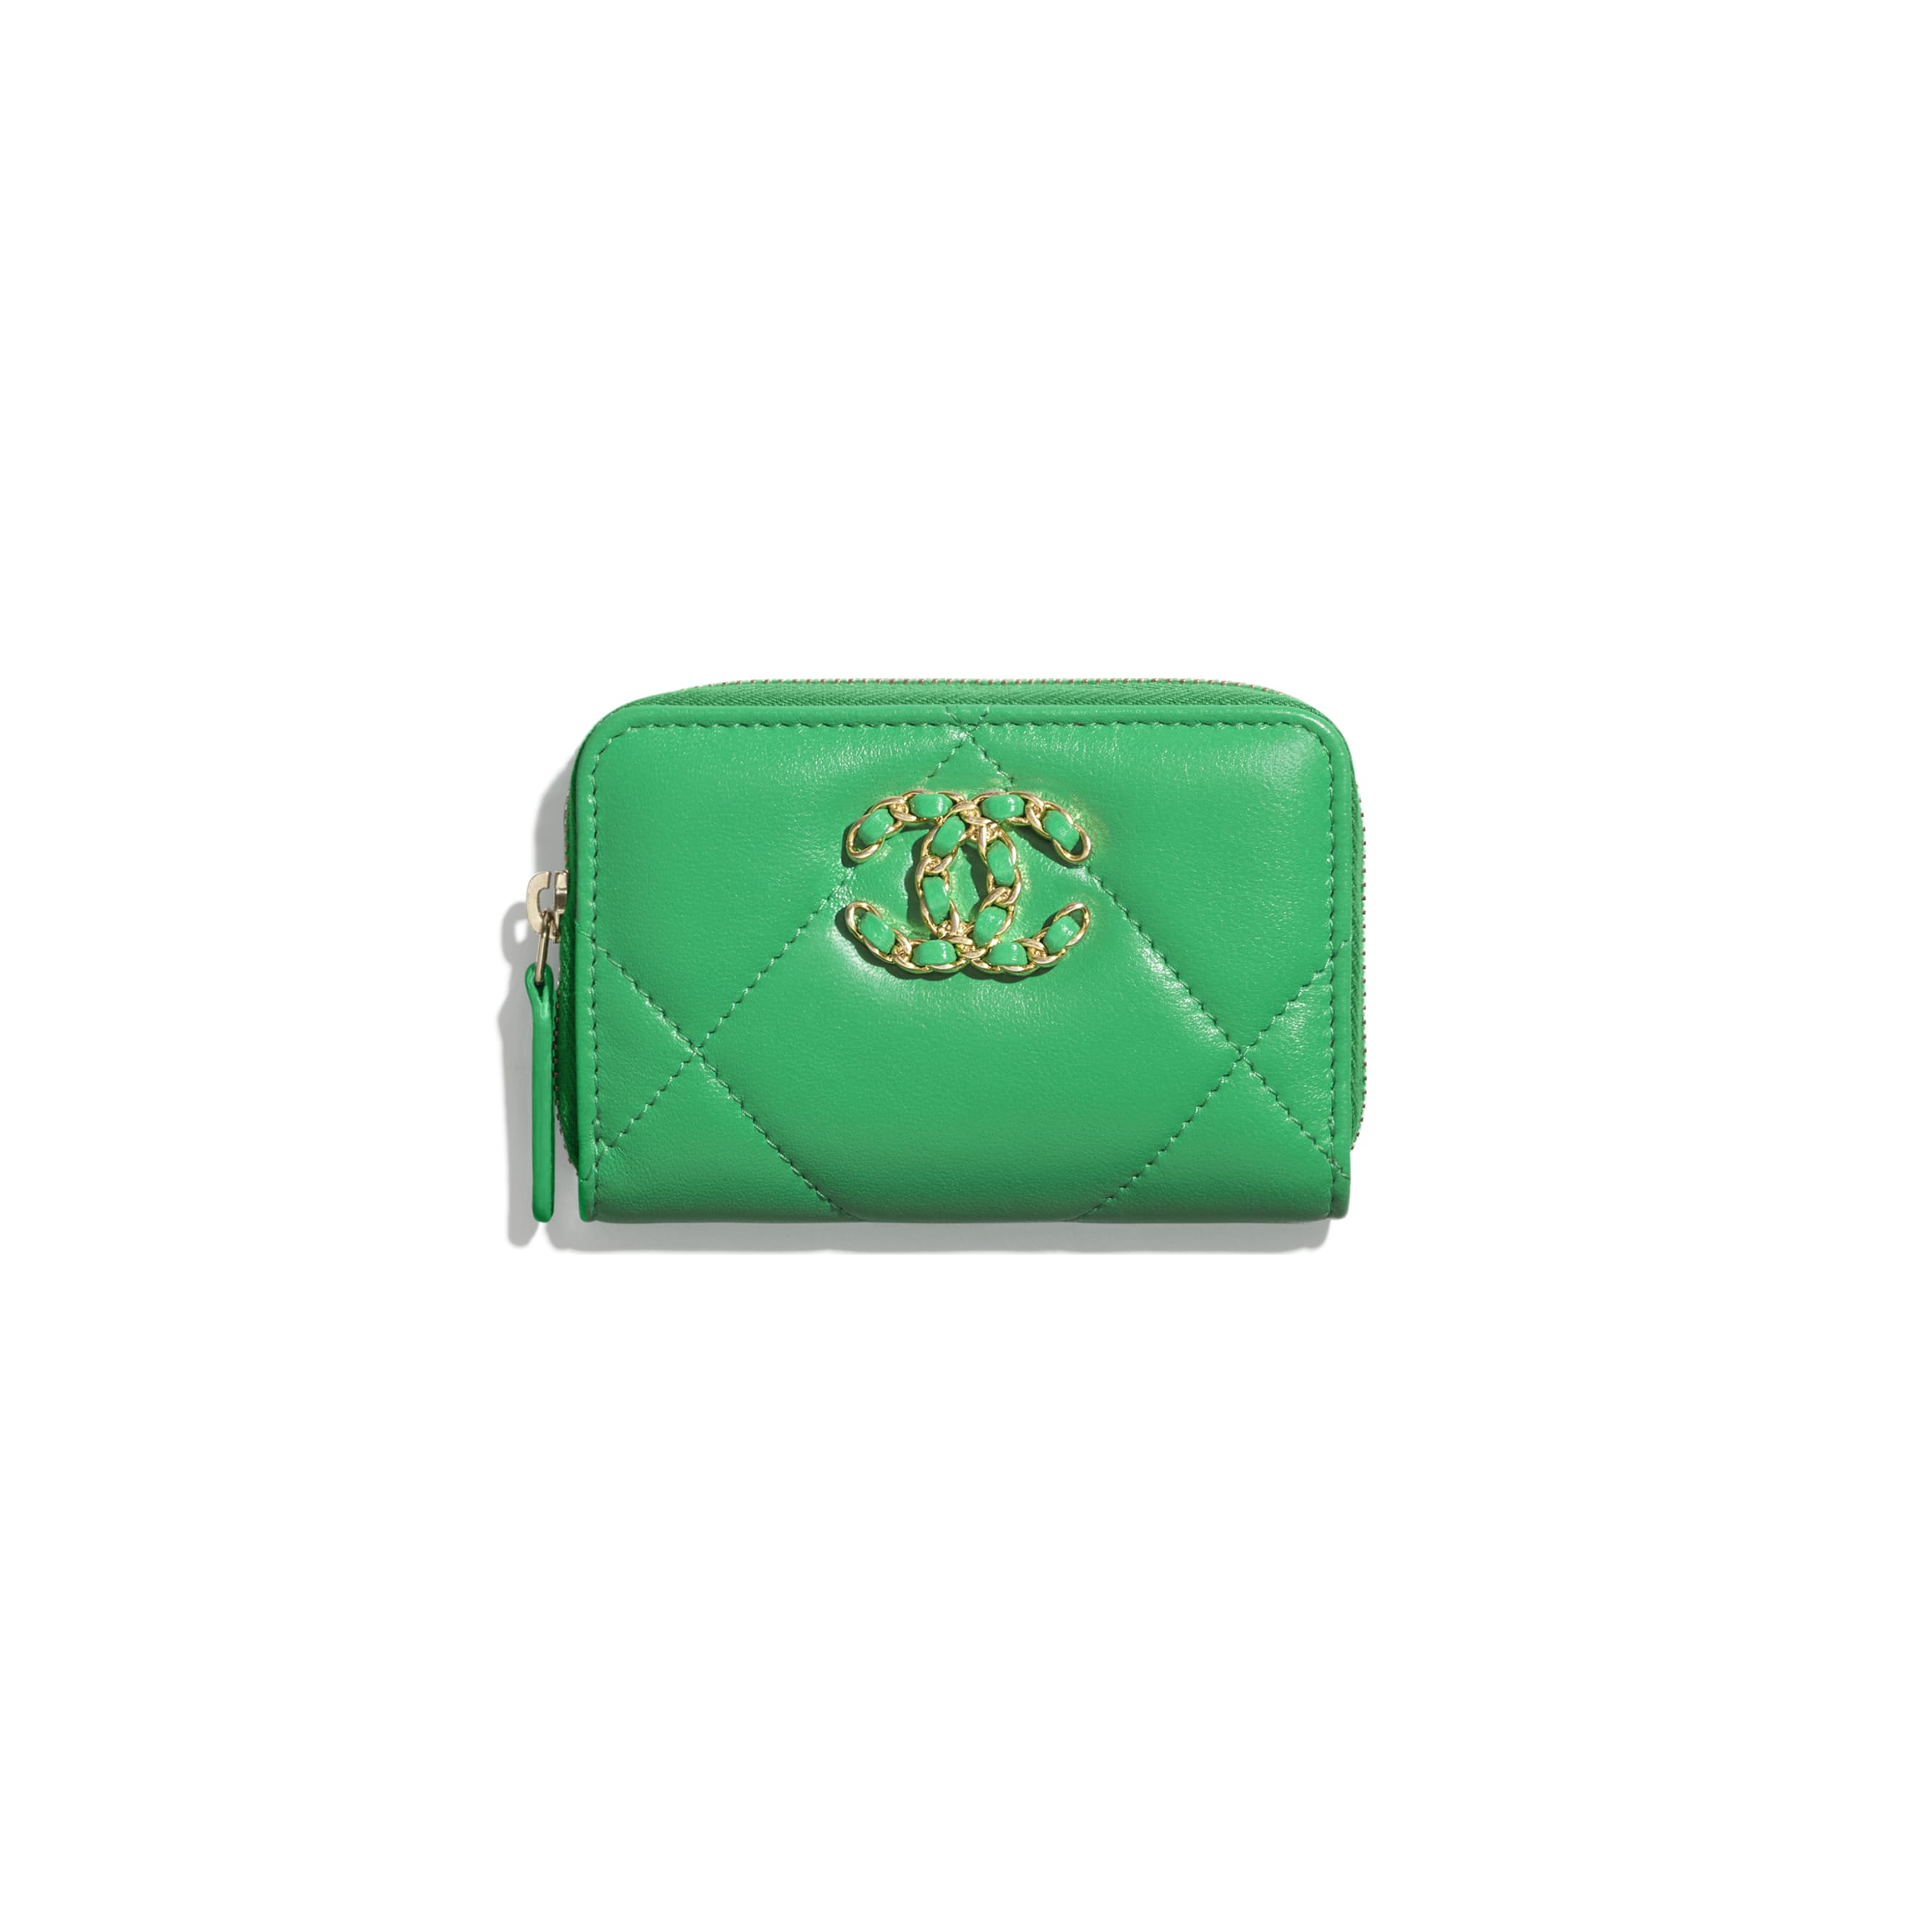 CHANEL 19 Zipped Coin Purse - Green - Lambskin, Gold-Tone, Silver-Tone & Ruthenium-Finish Metal - Default view - see standard sized version